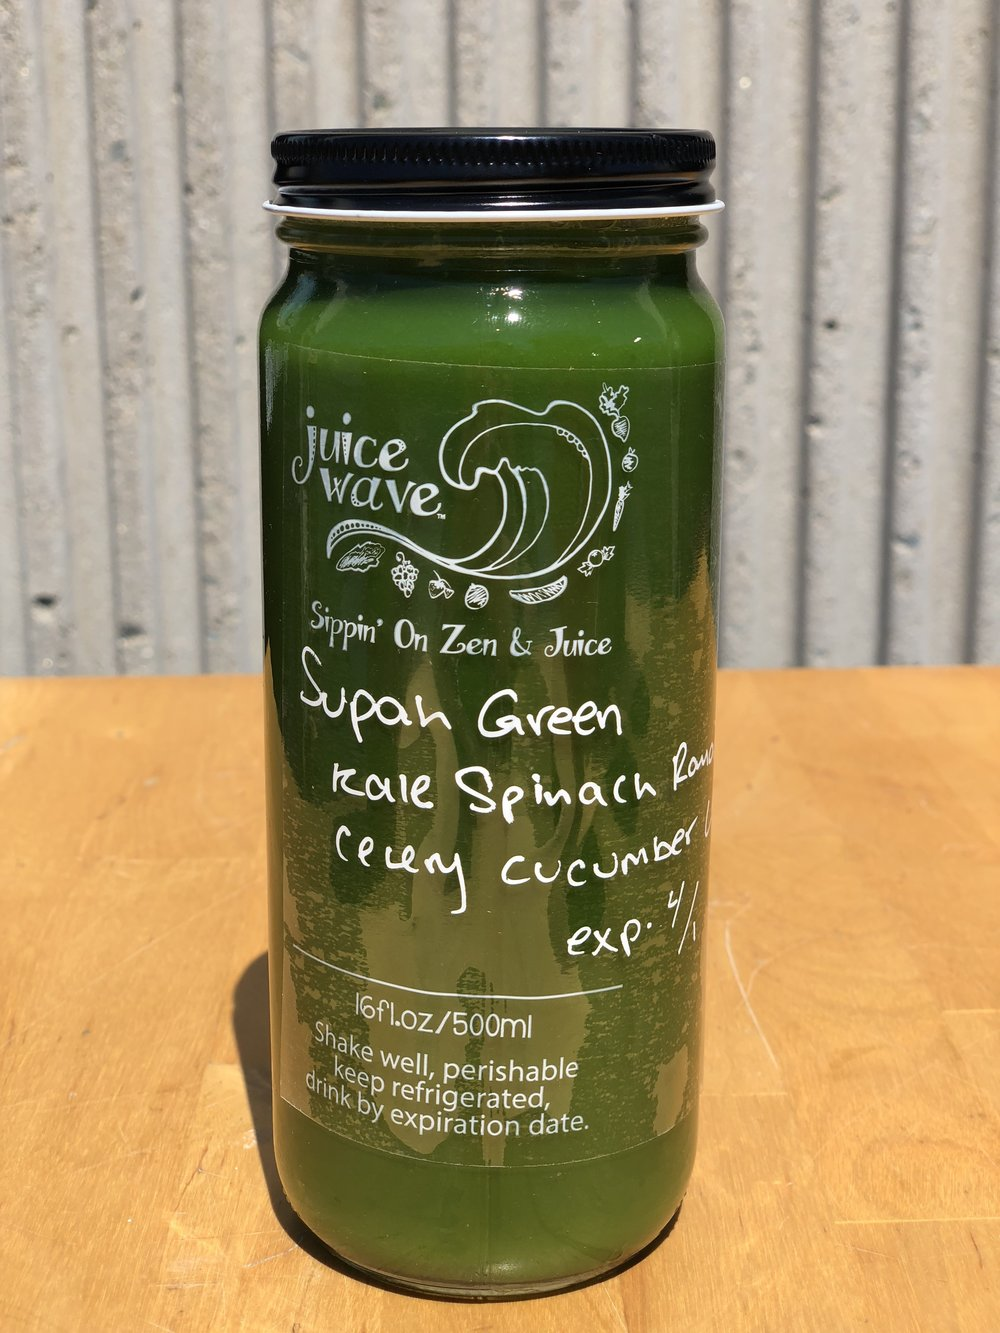 SUPAH GREEN: Kale, Spinach, Romaine, Celery, Cucumber, Parsley, Lemon